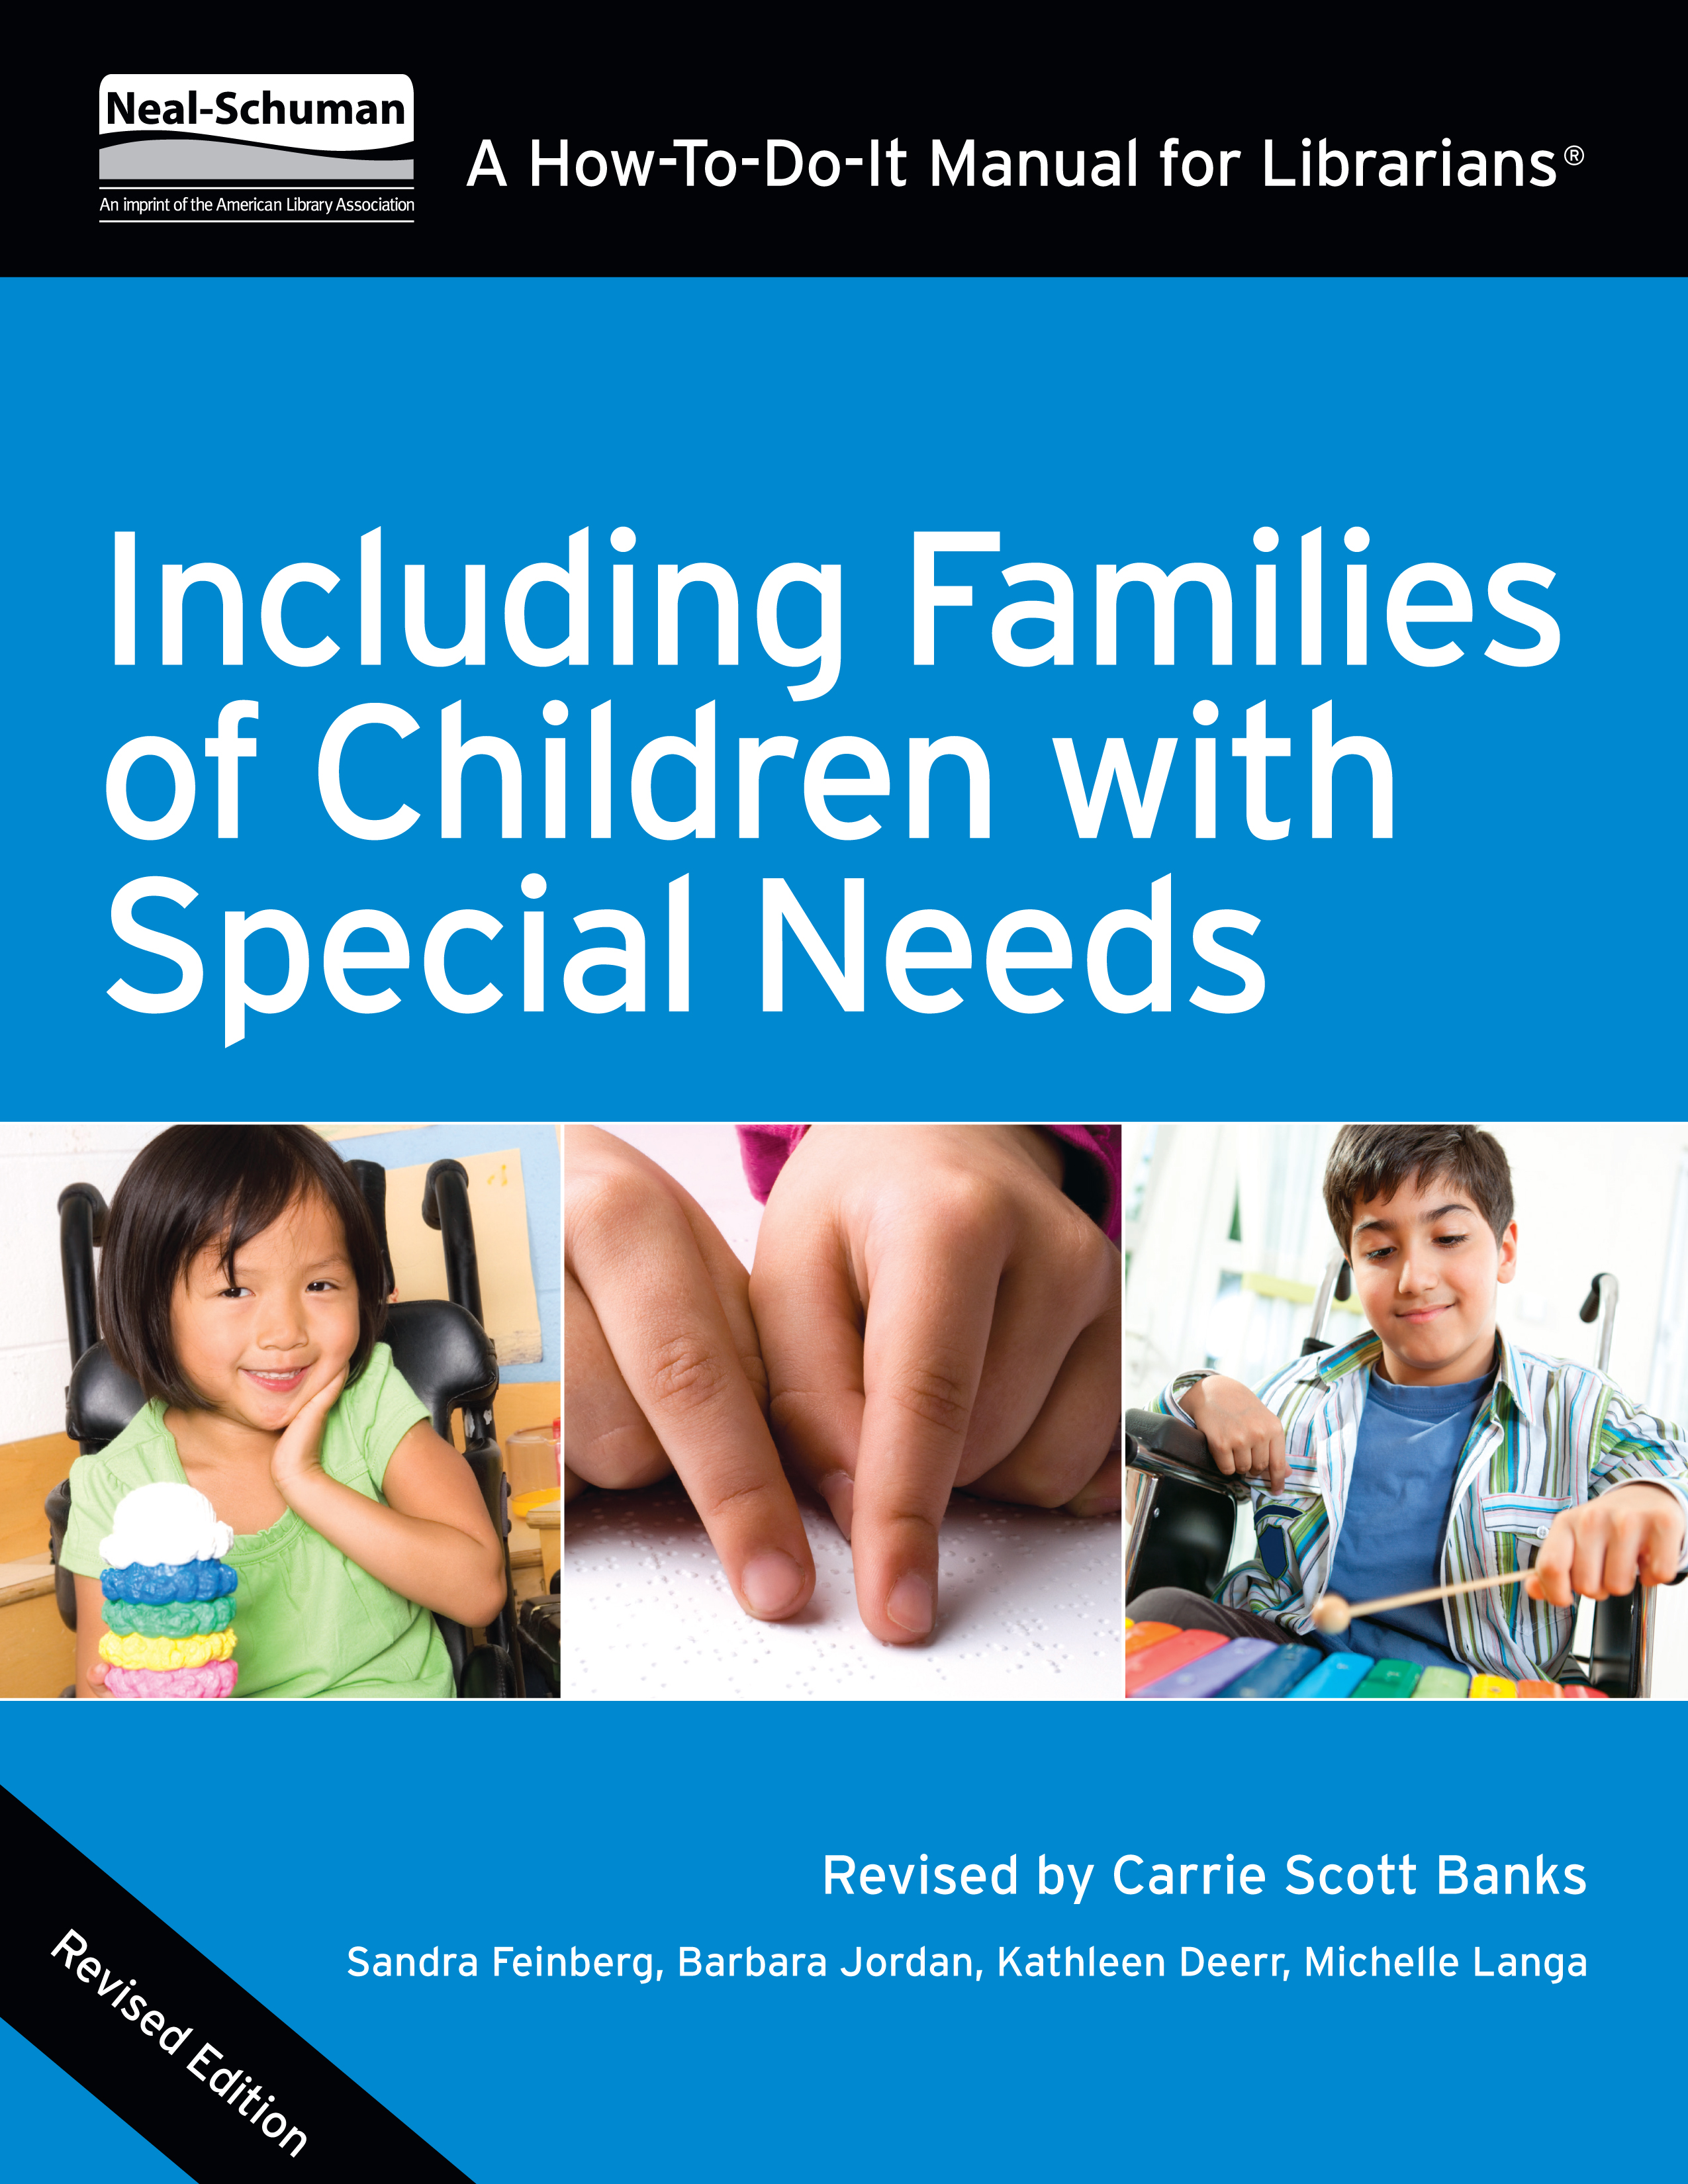 How to include families of children with special needs ...